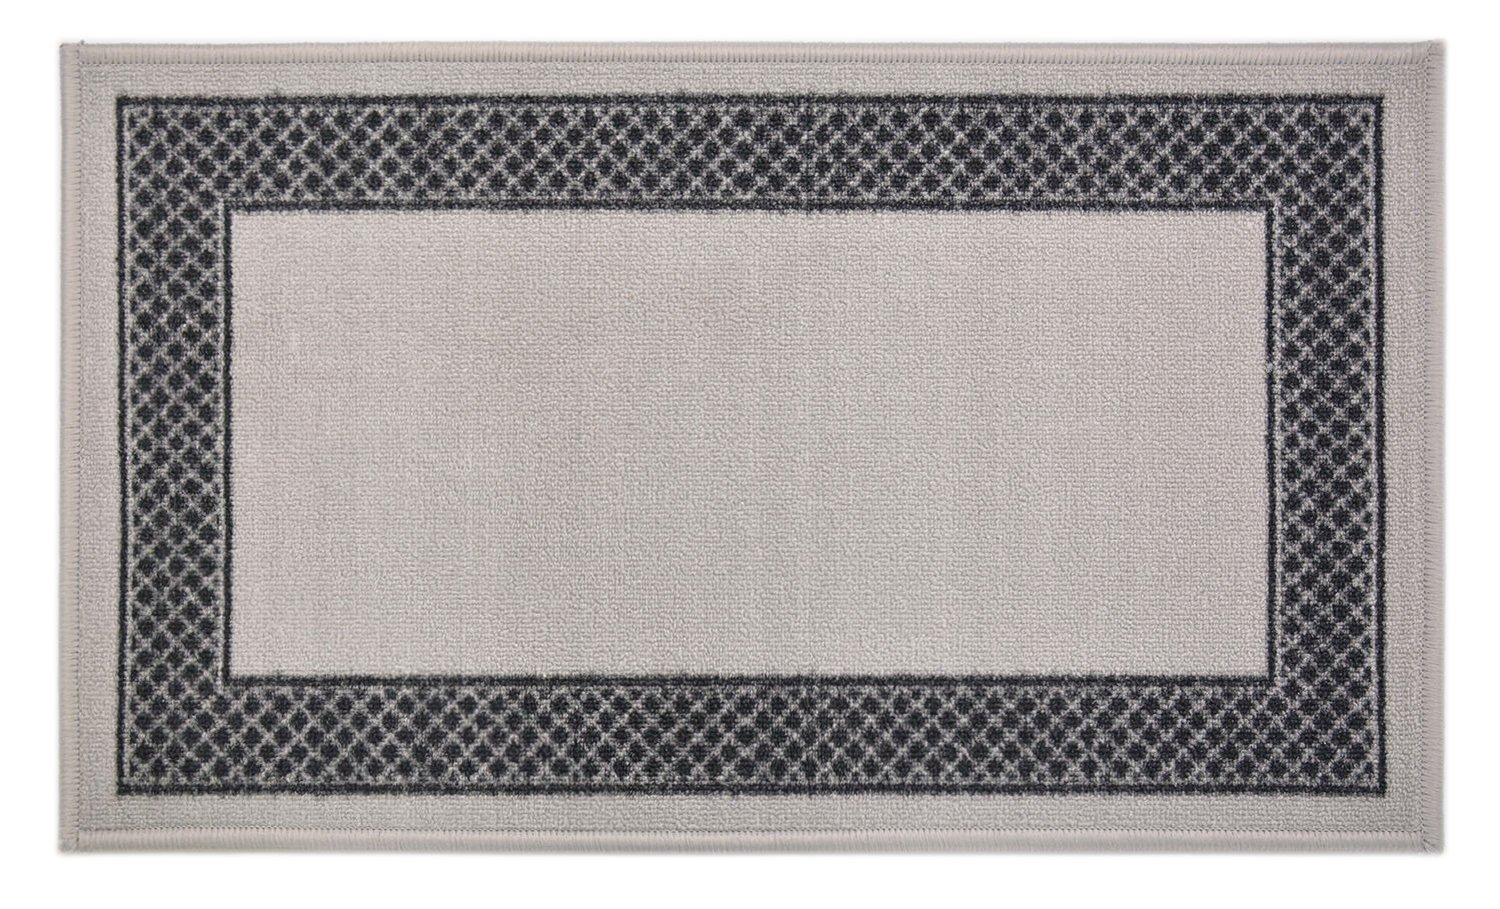 "Pinoletti Border Design Printed Slip Resistant Rubber Back Latex Runner Rug and Area Rugs (Grey Black, 18"" x 30"" Mat)"